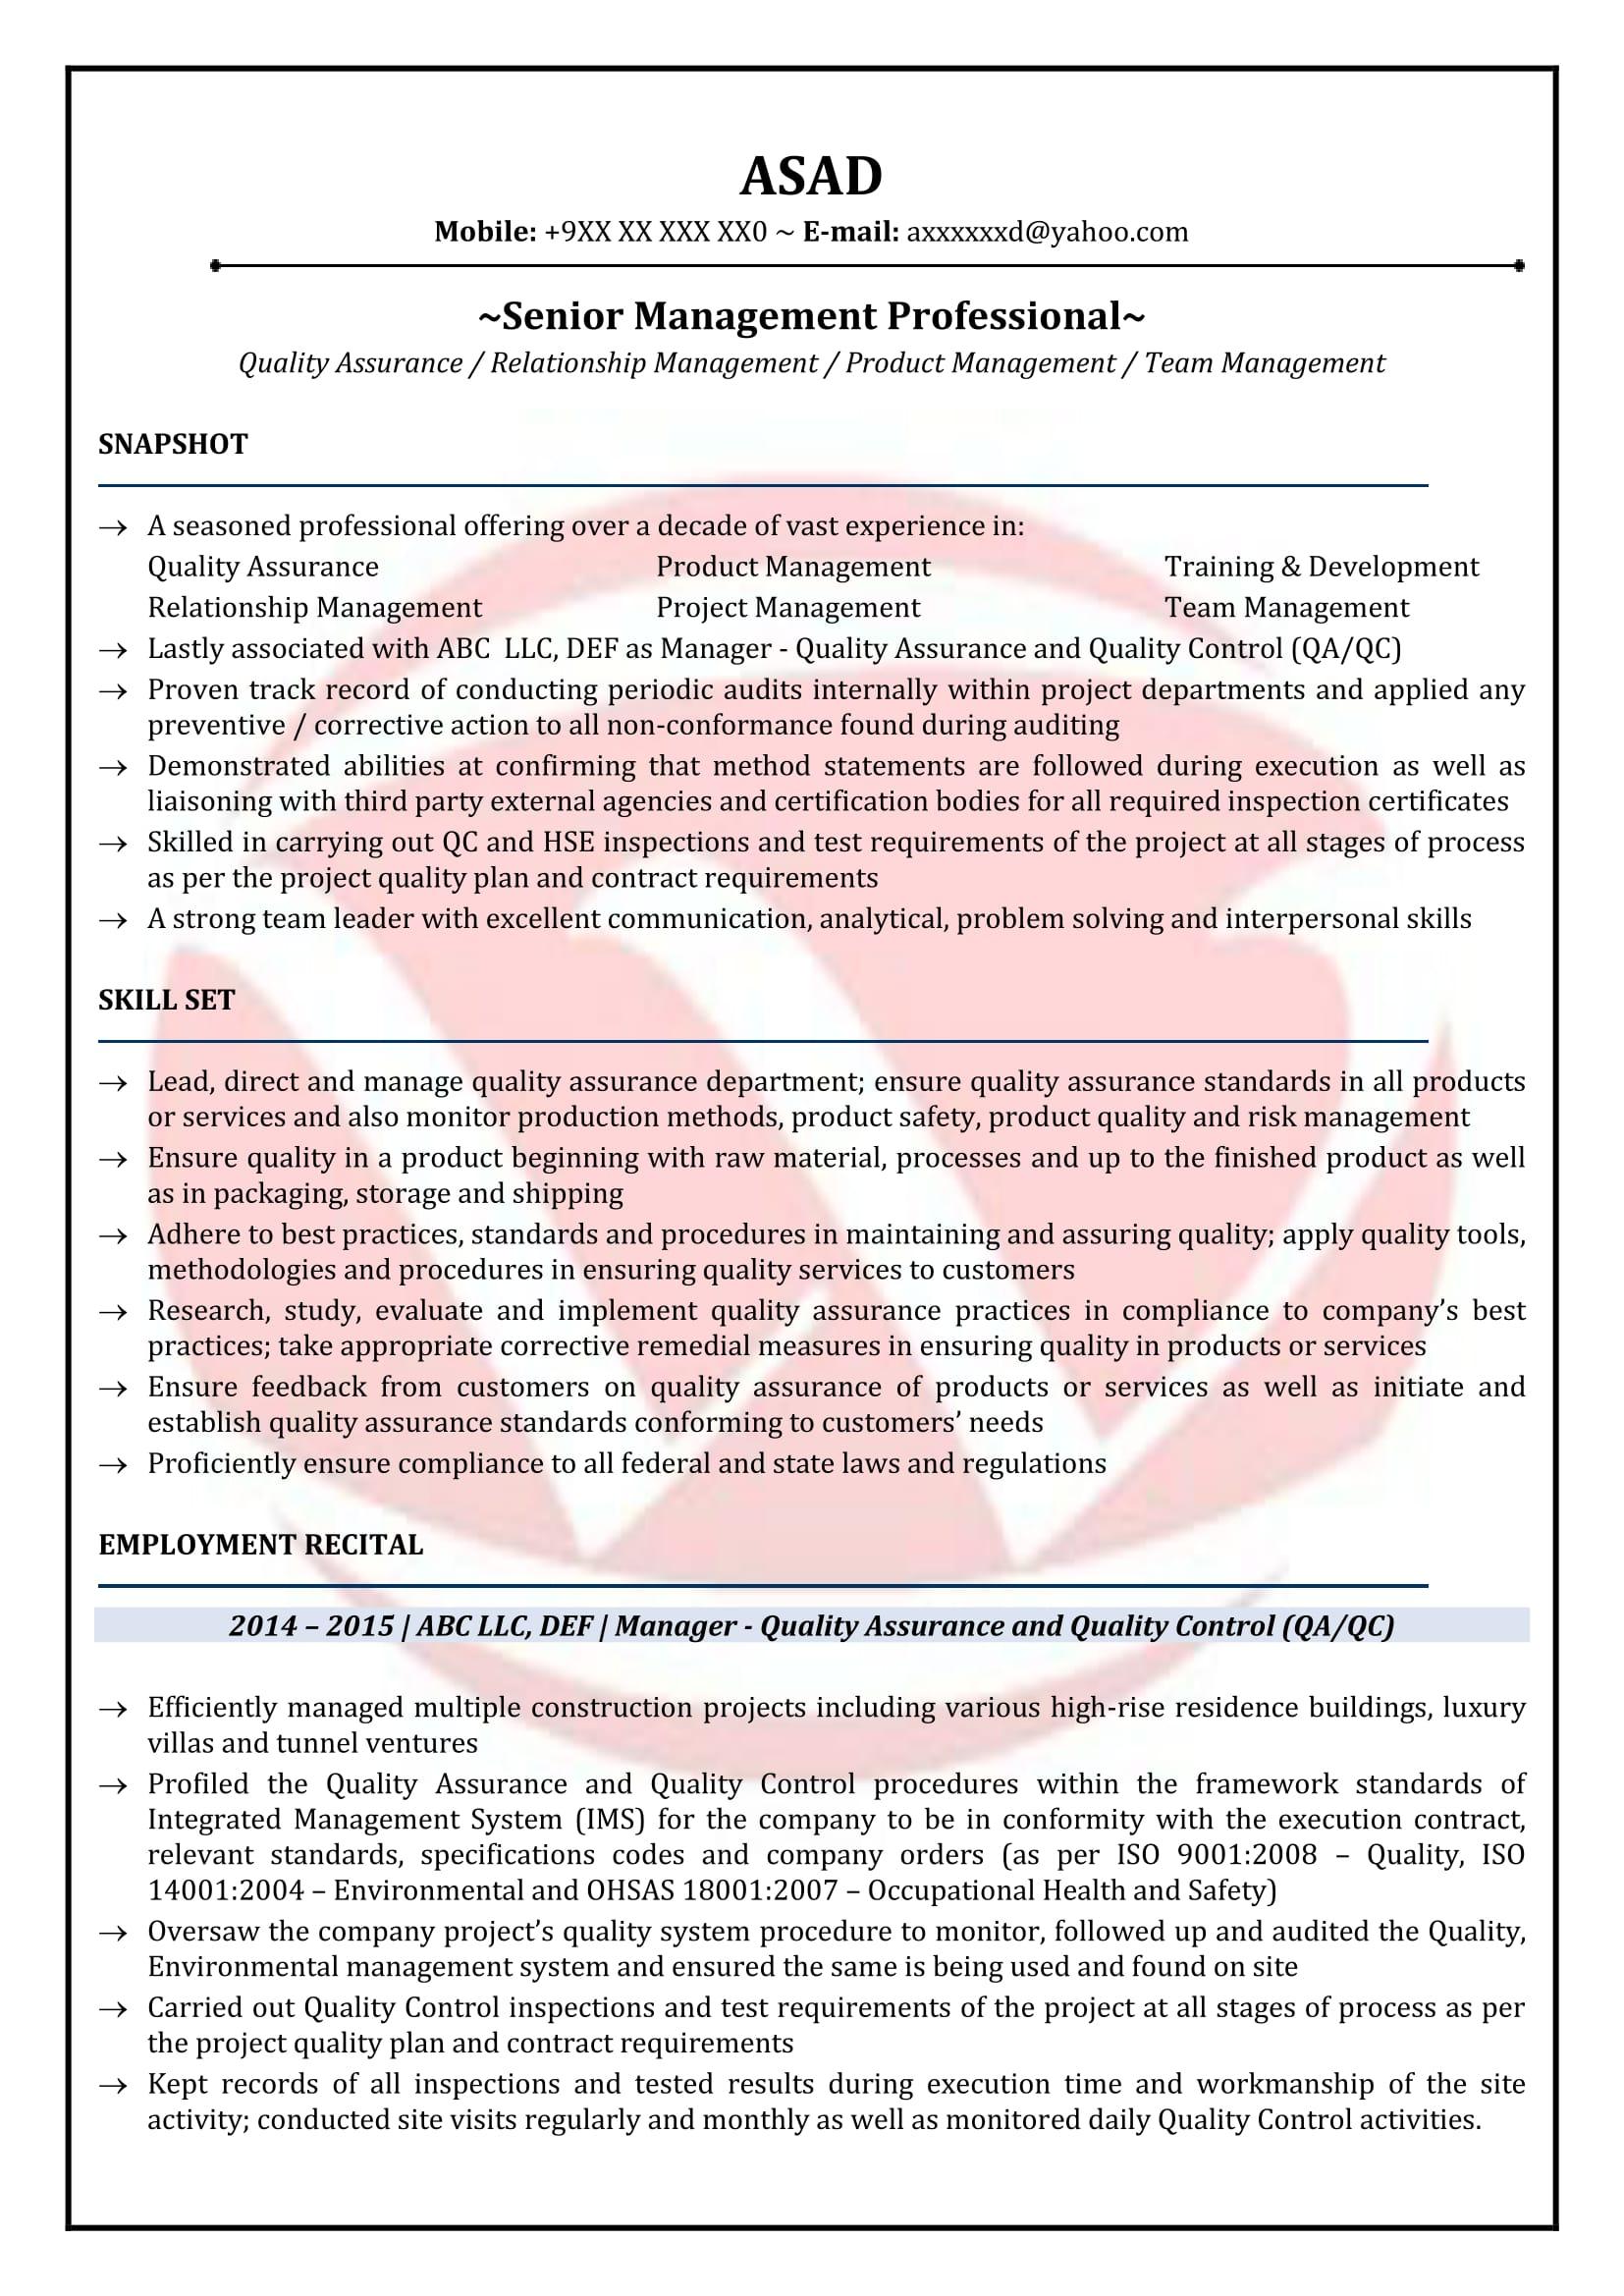 qa manager sample resumes resume format templates for quality control quick builder david Resume Resume Format For Quality Control Manager